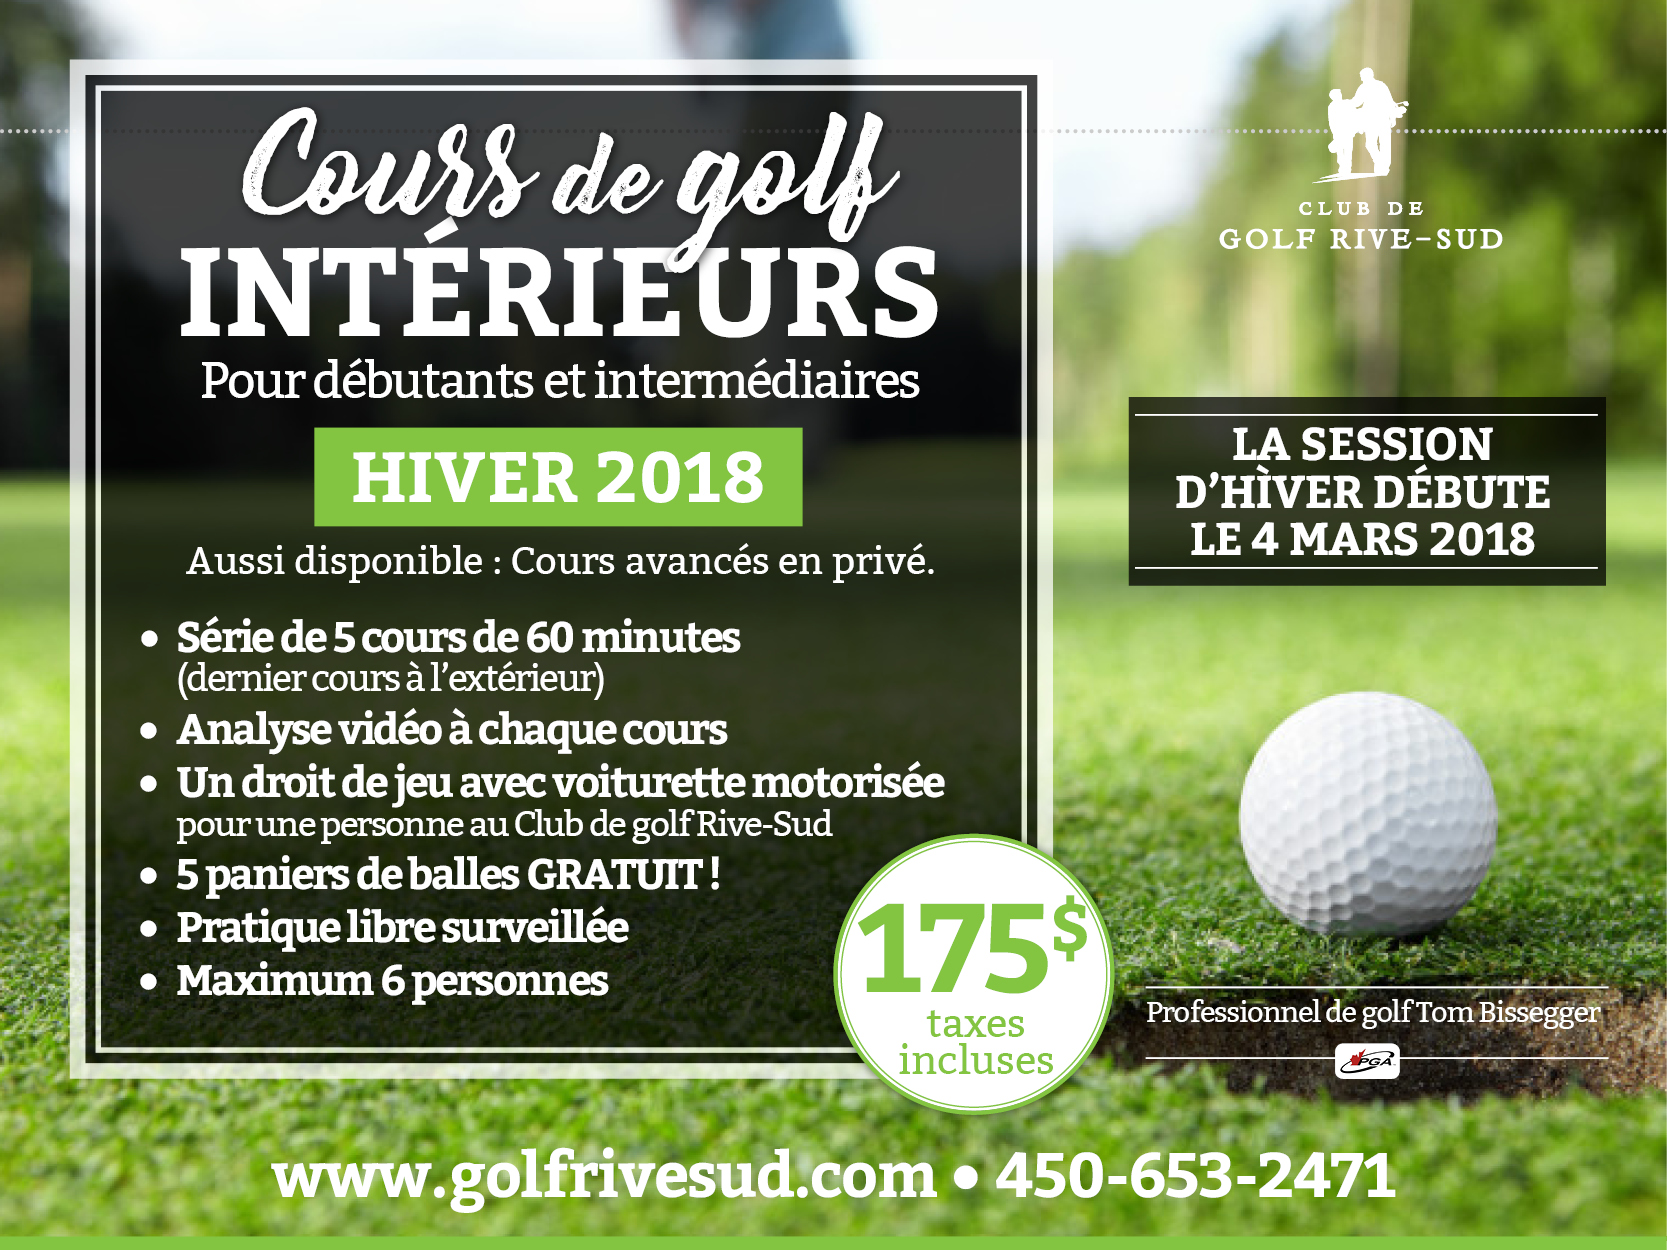 Academie golf rive sud for Golf interieur rive sud